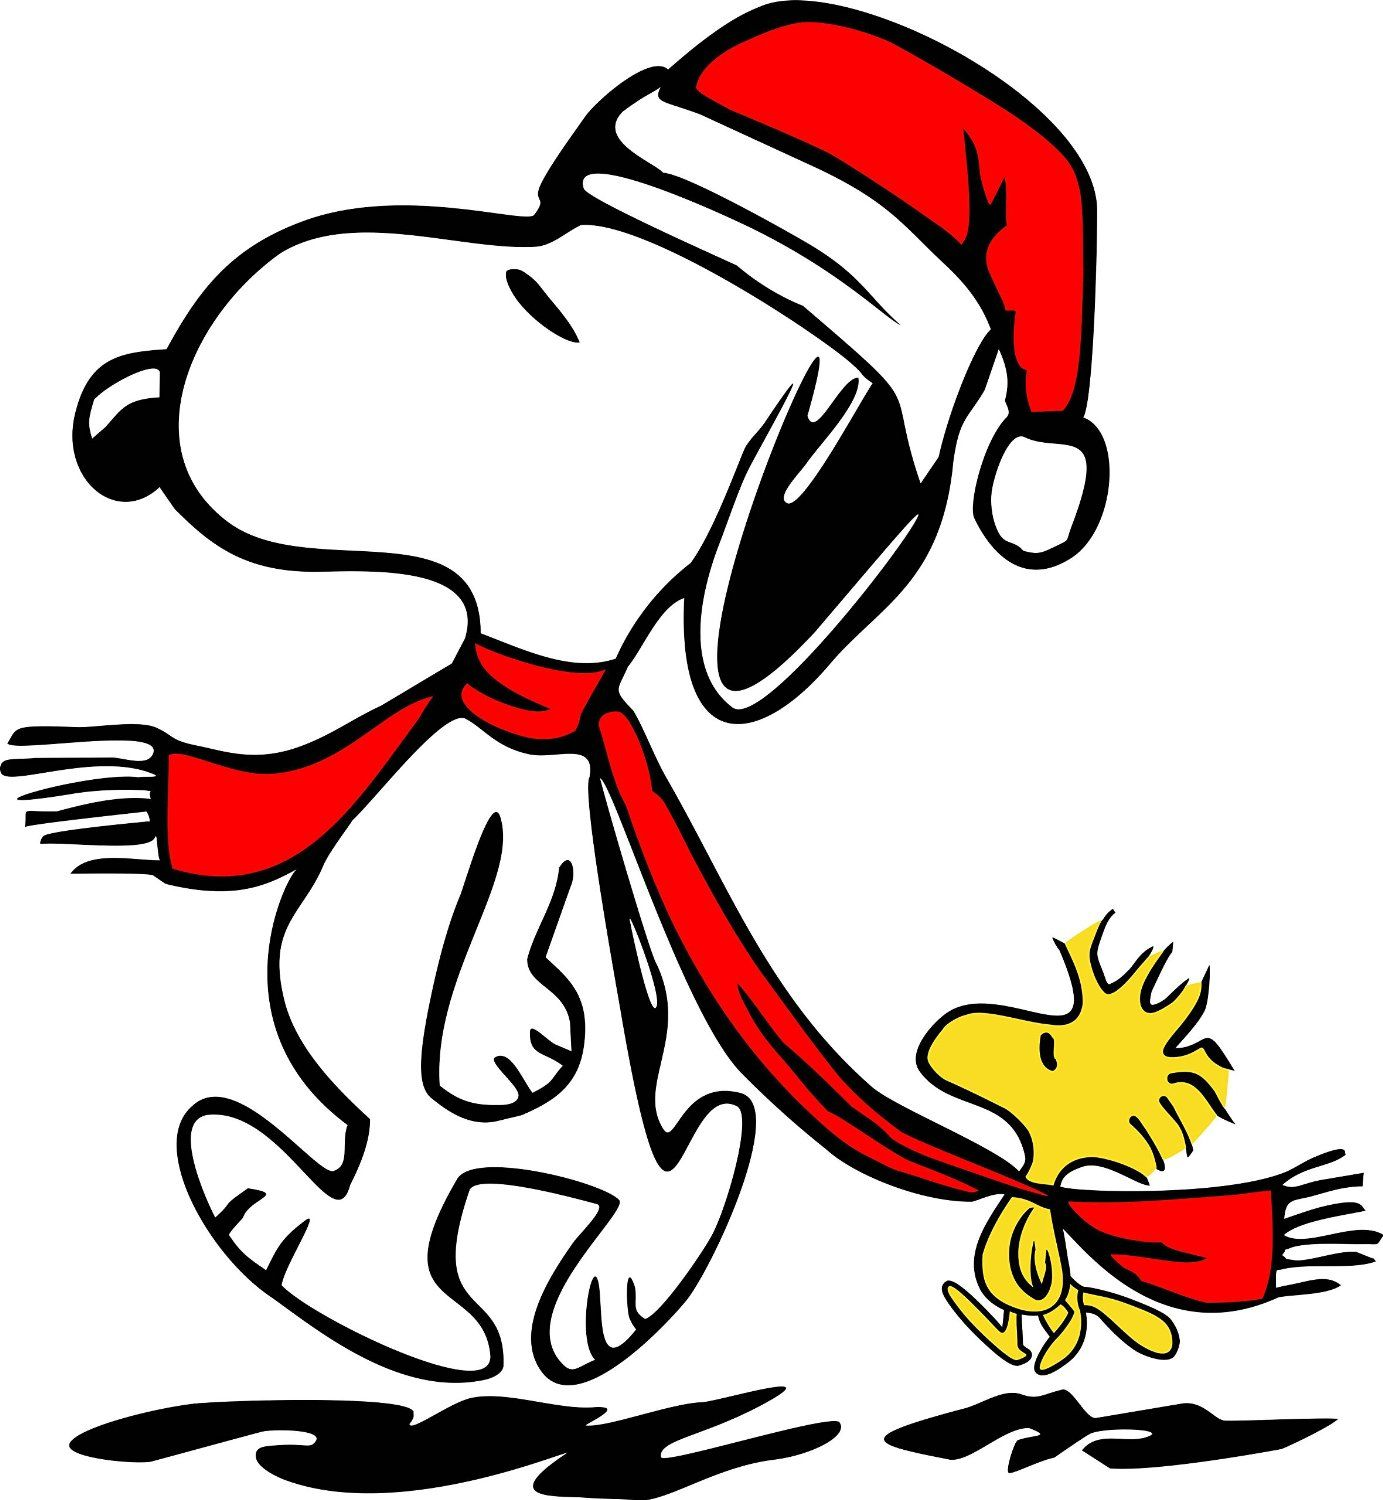 hight resolution of amazon com snoopy winter holiday christmas with woodstock in stocking cap and red scarf 14 x 16 inches new item